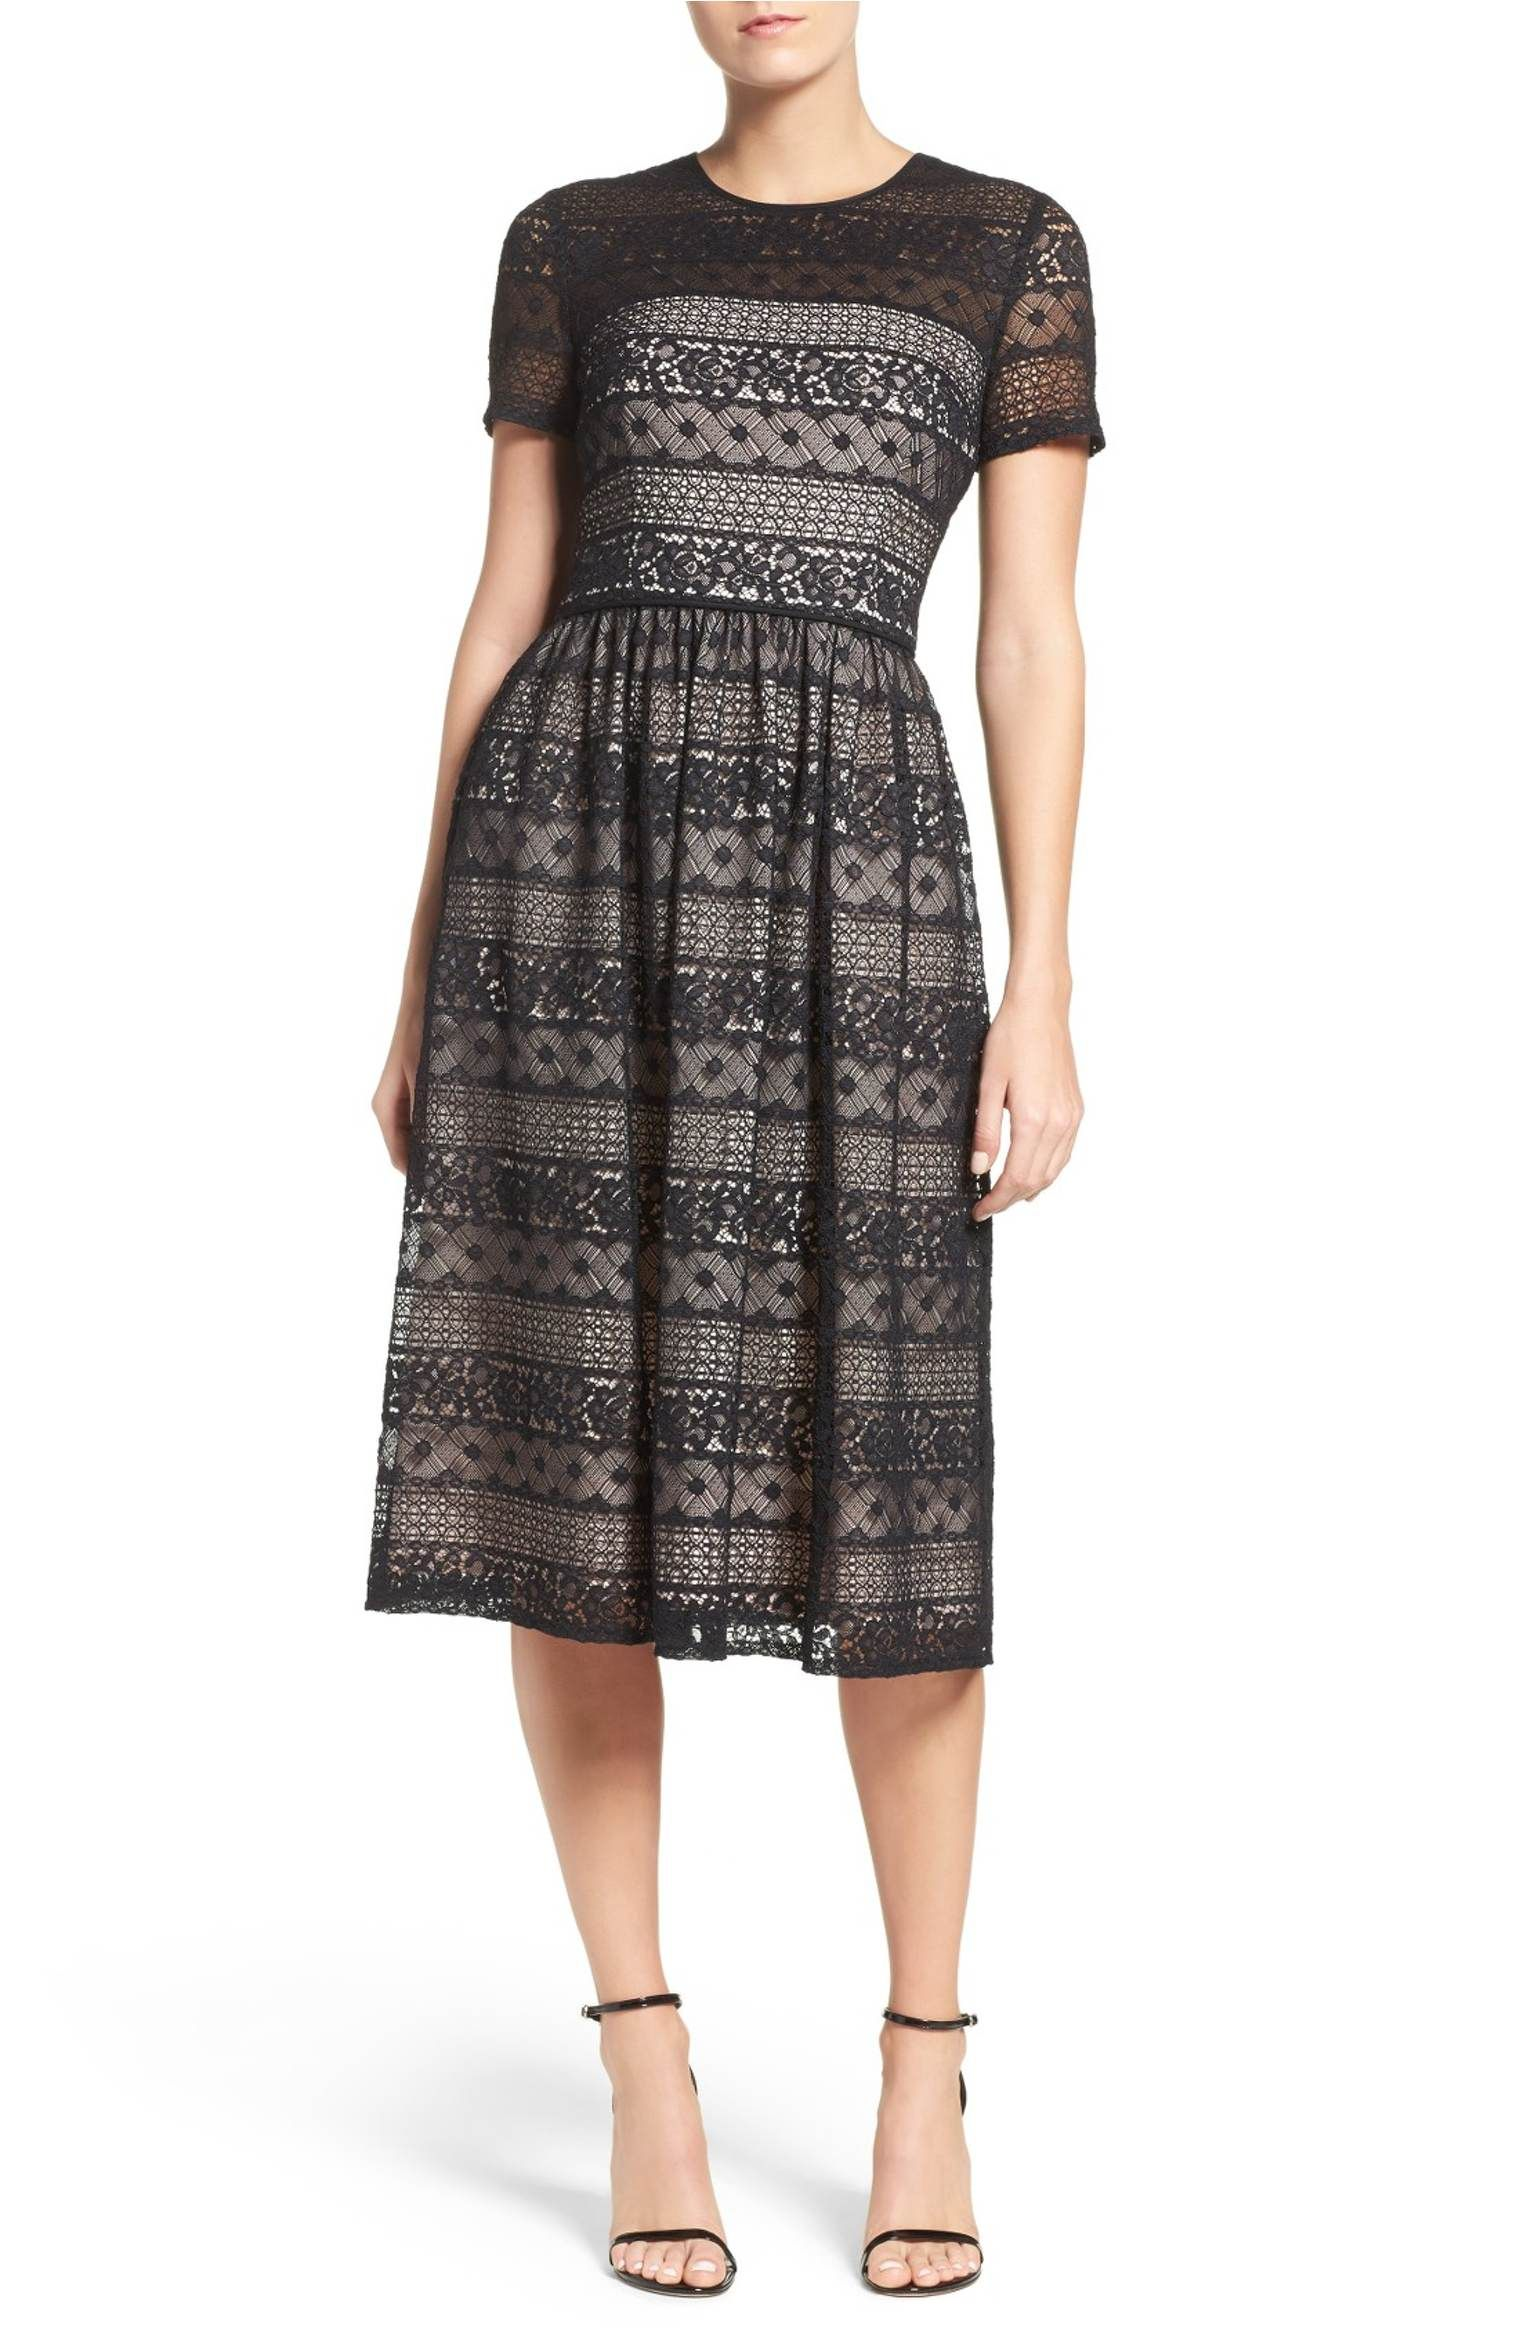 Main Image Maggy London Lace Midi Dress Dress Me Up Pinterest